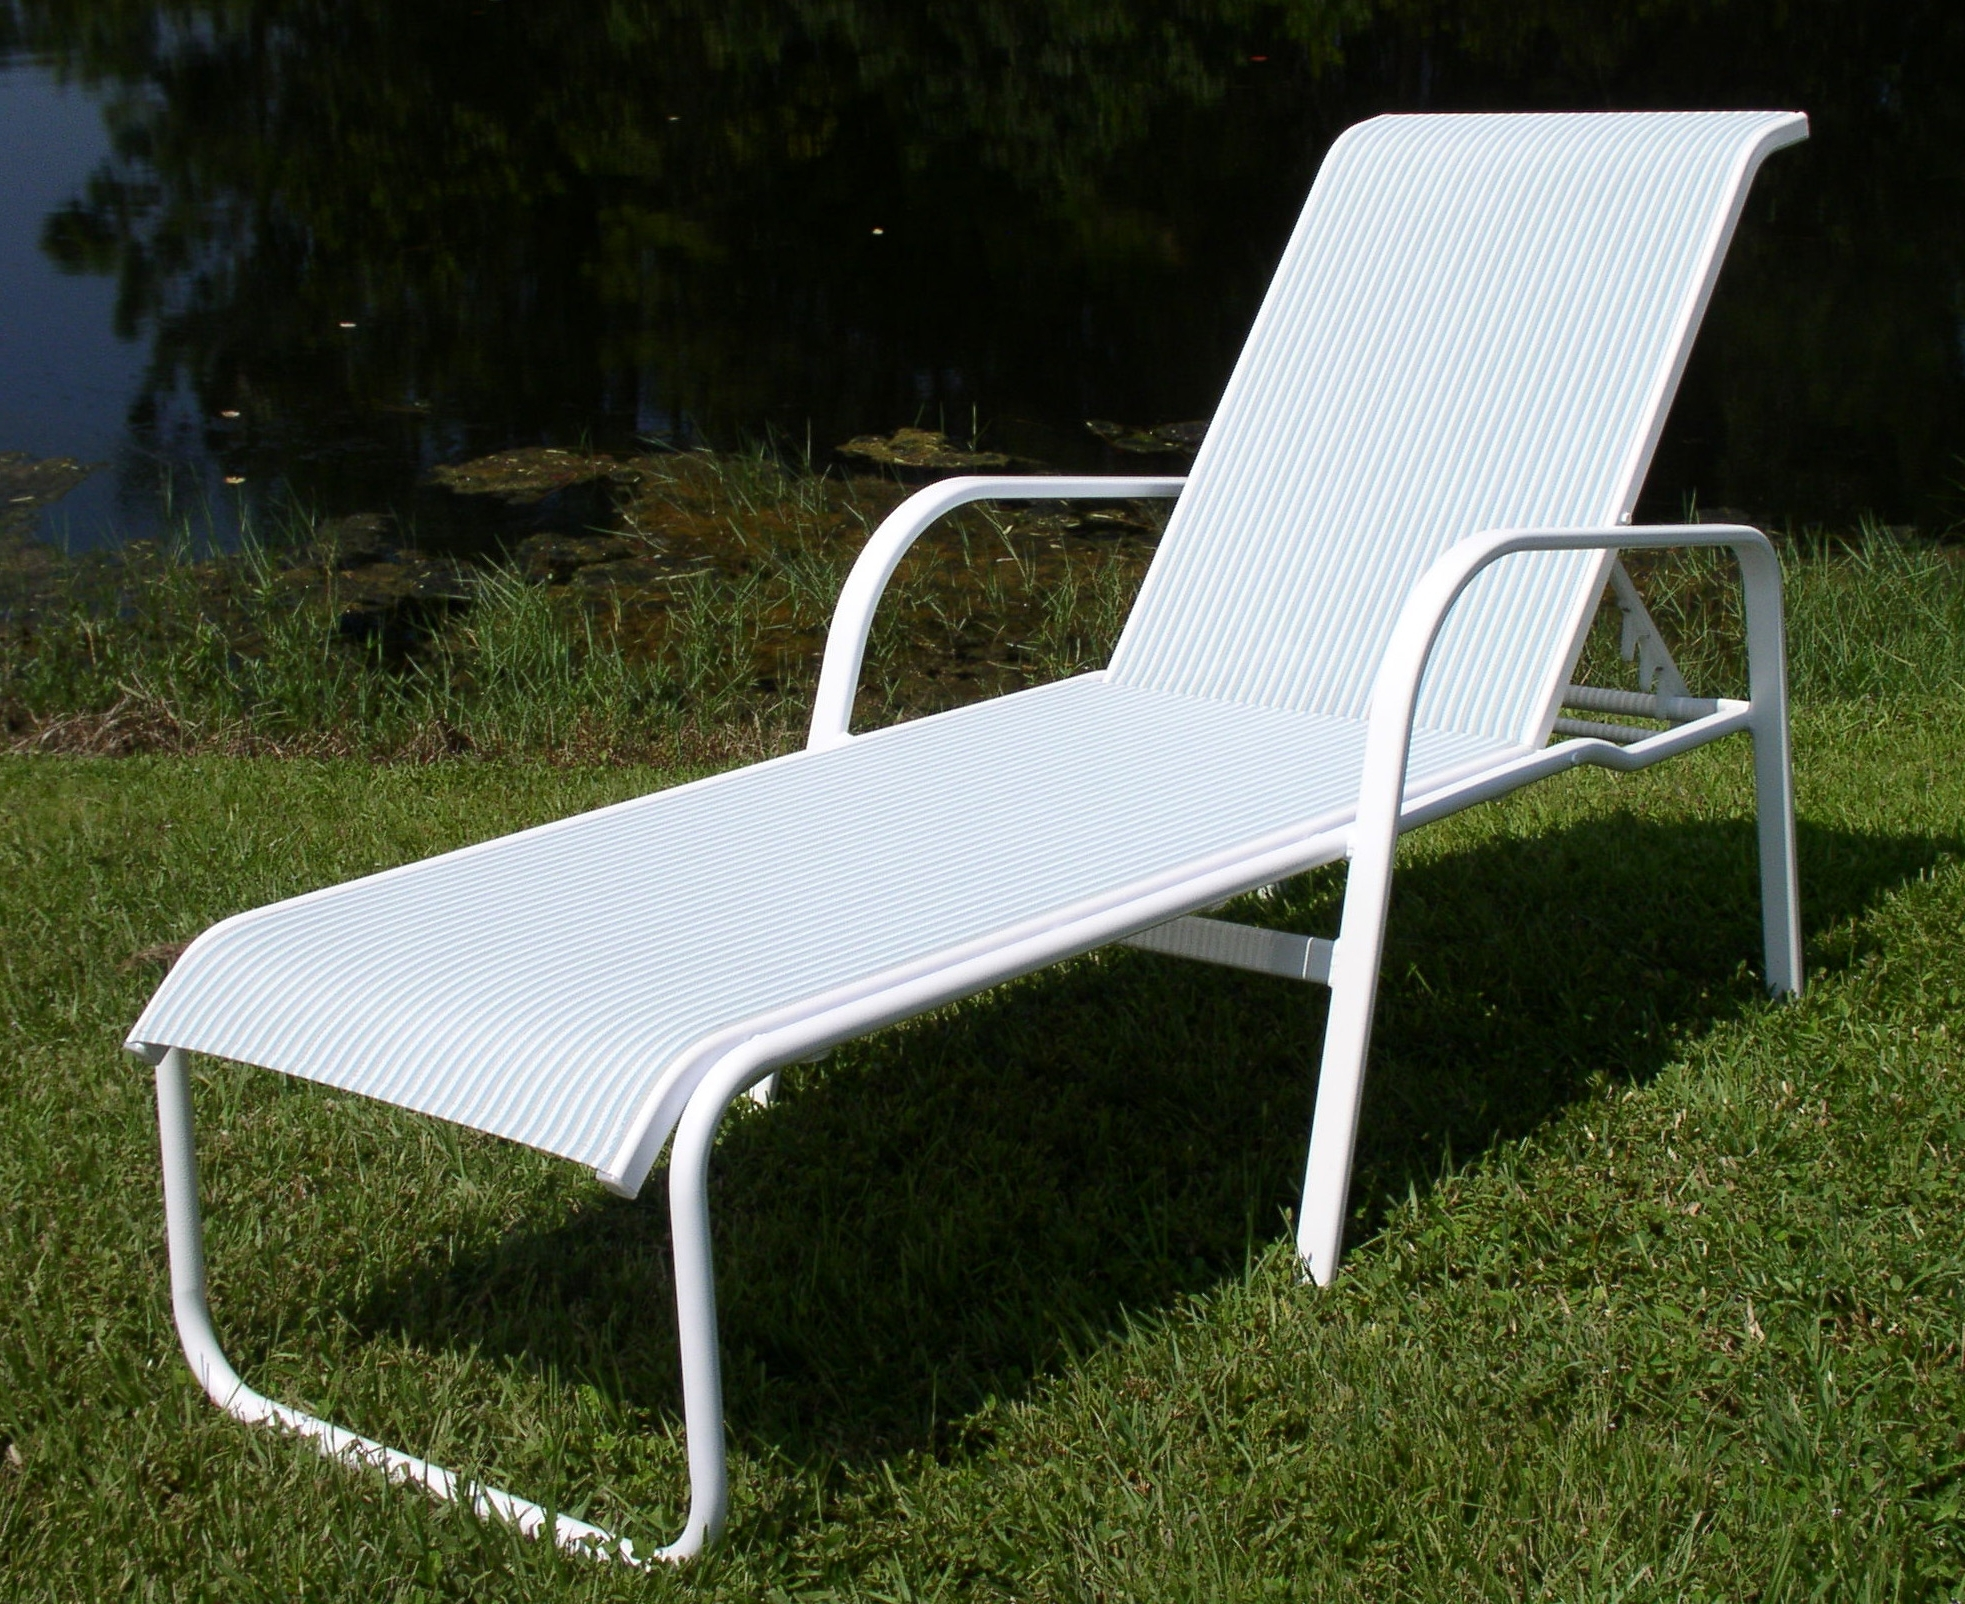 Most Recent Chaise Lounge Chairs At Sears Inside Furniture: Kmart Lawn Chairs (View 12 of 15)